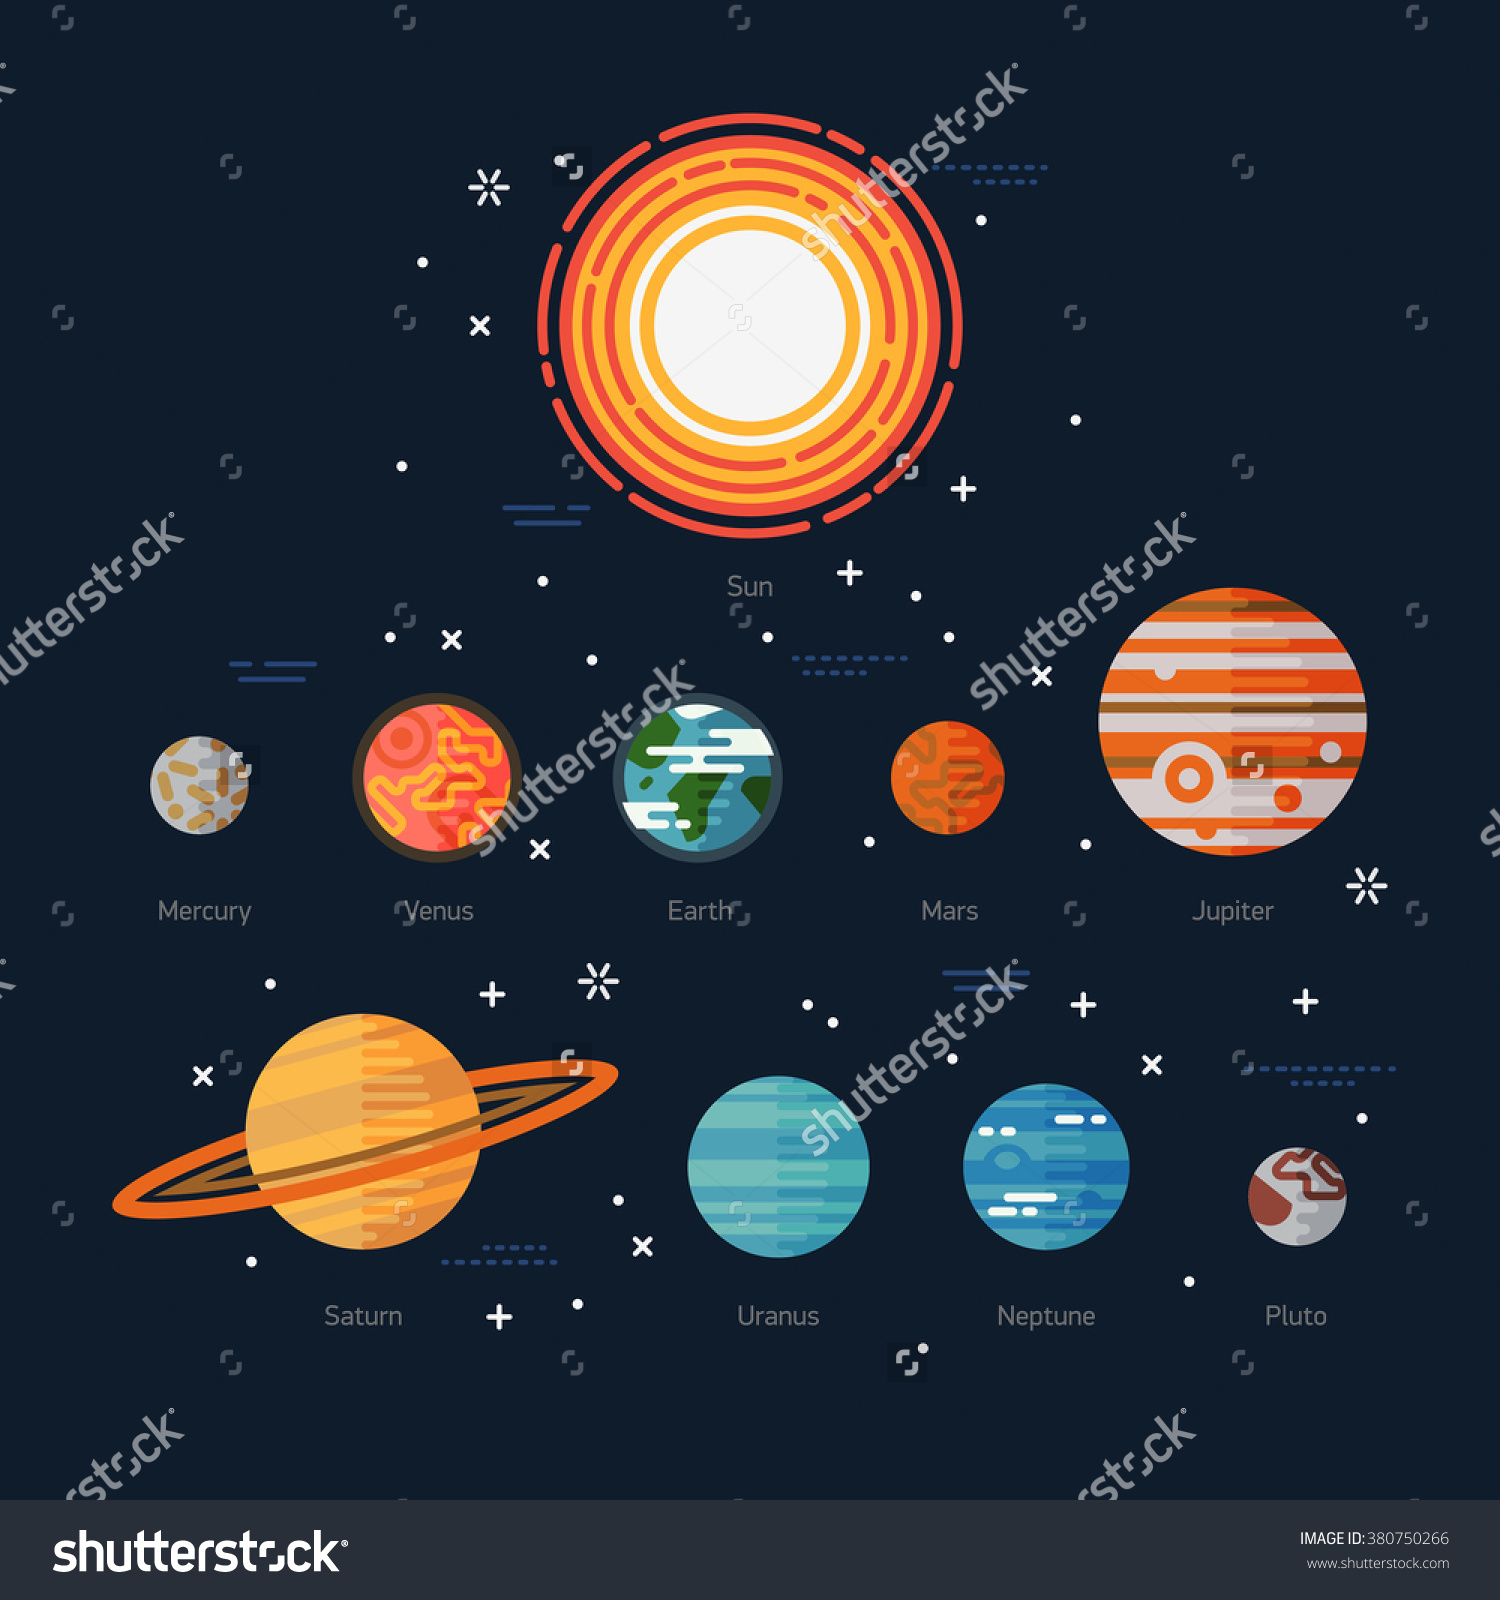 Celestial body clipart - Clipground